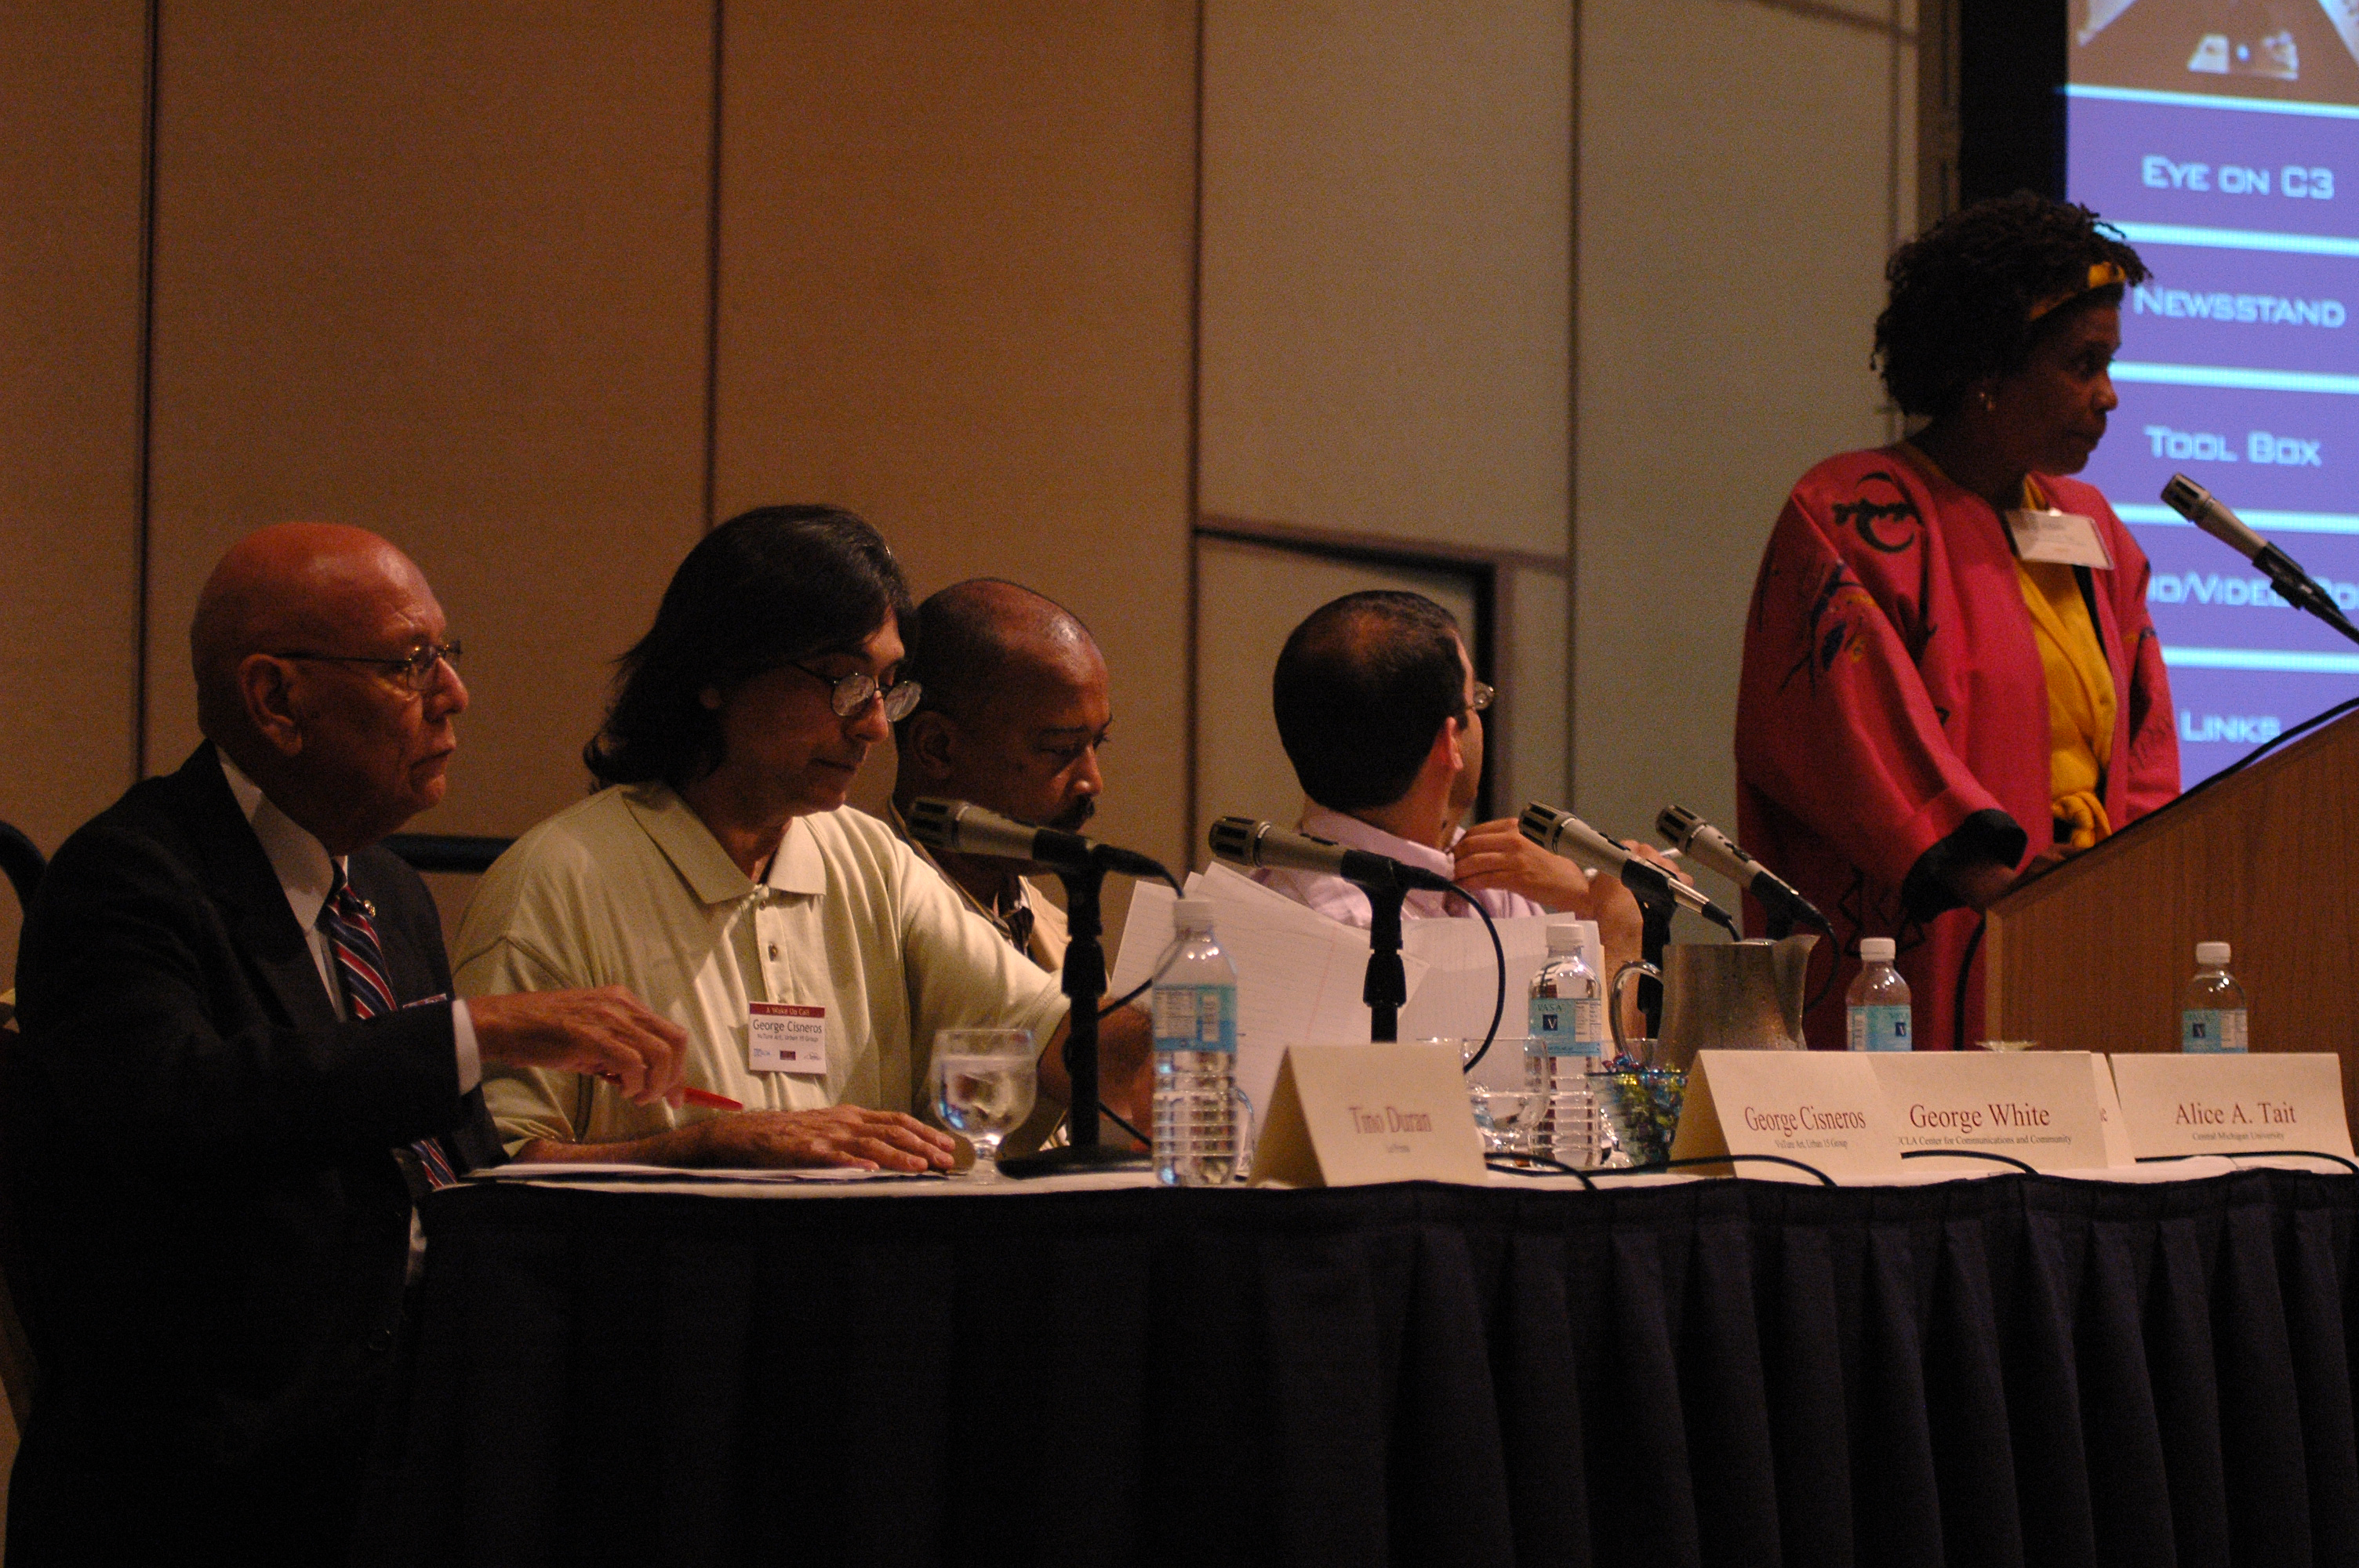 What Do You Mean Restore the Trust? Panel